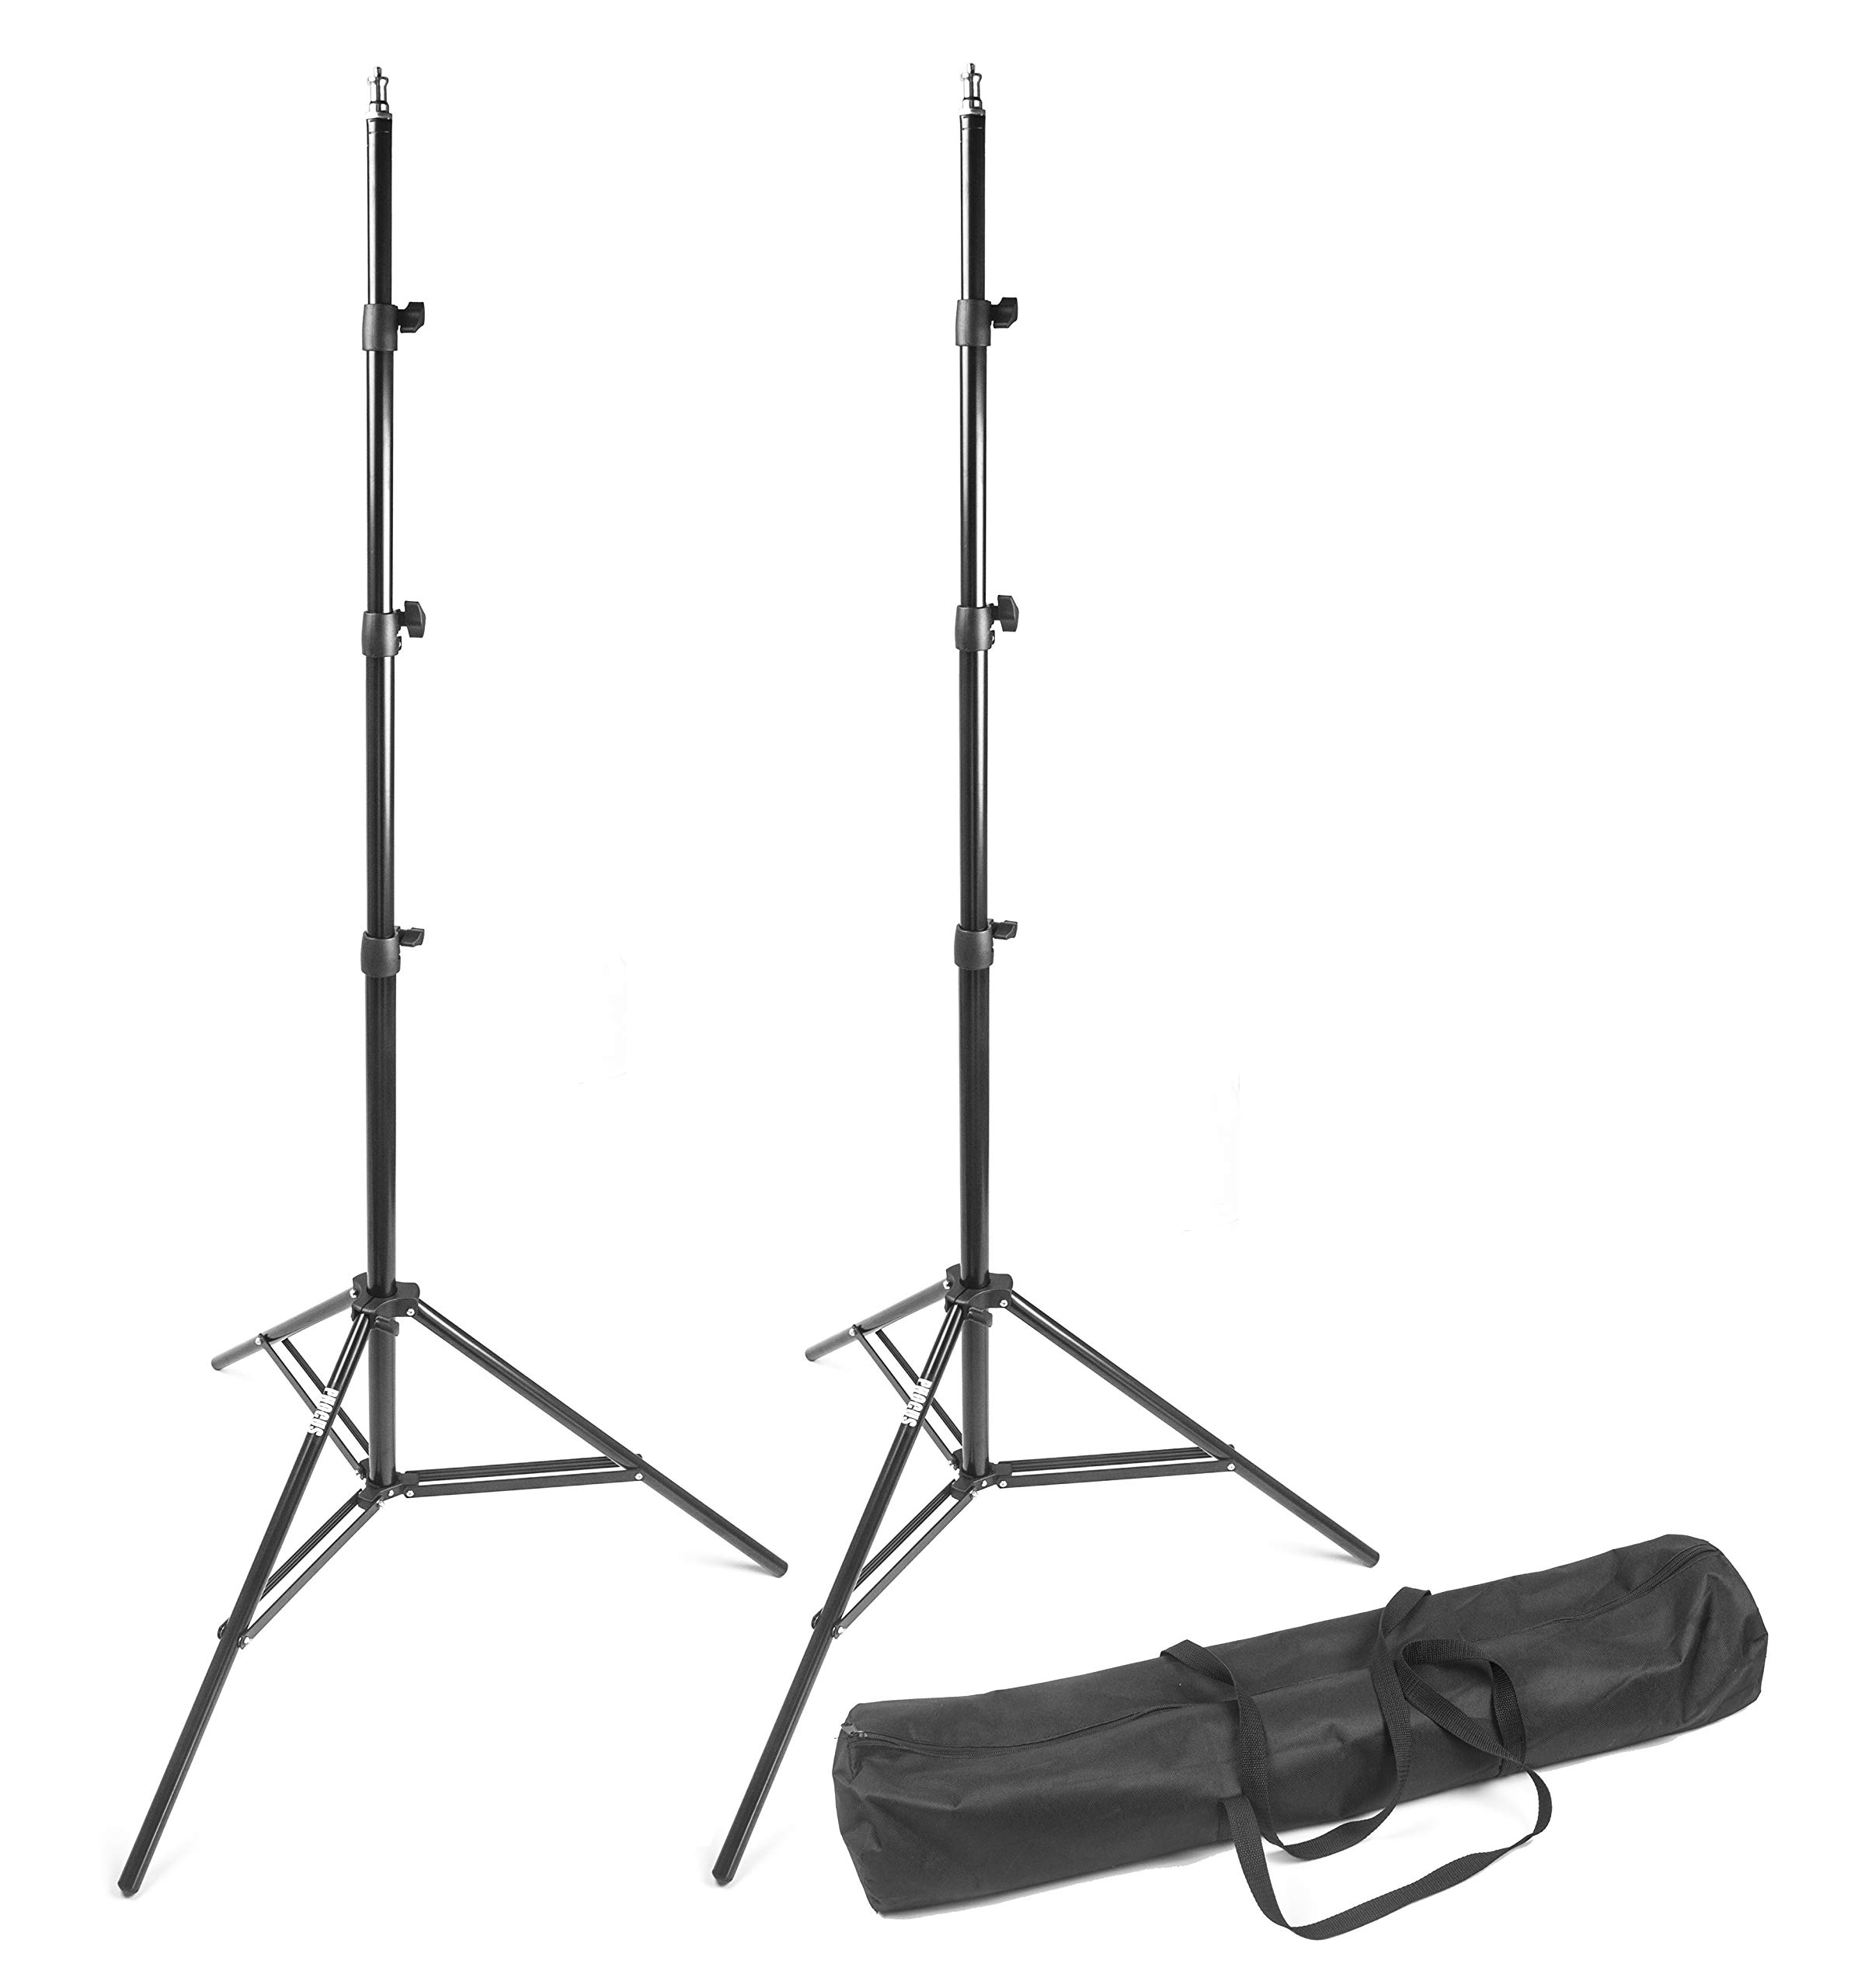 PHOCUS 8.8ft Compact Aluminum Light Stands for Photography with Carry Bag for Photo Studio & Video Lighting (2 Pack)